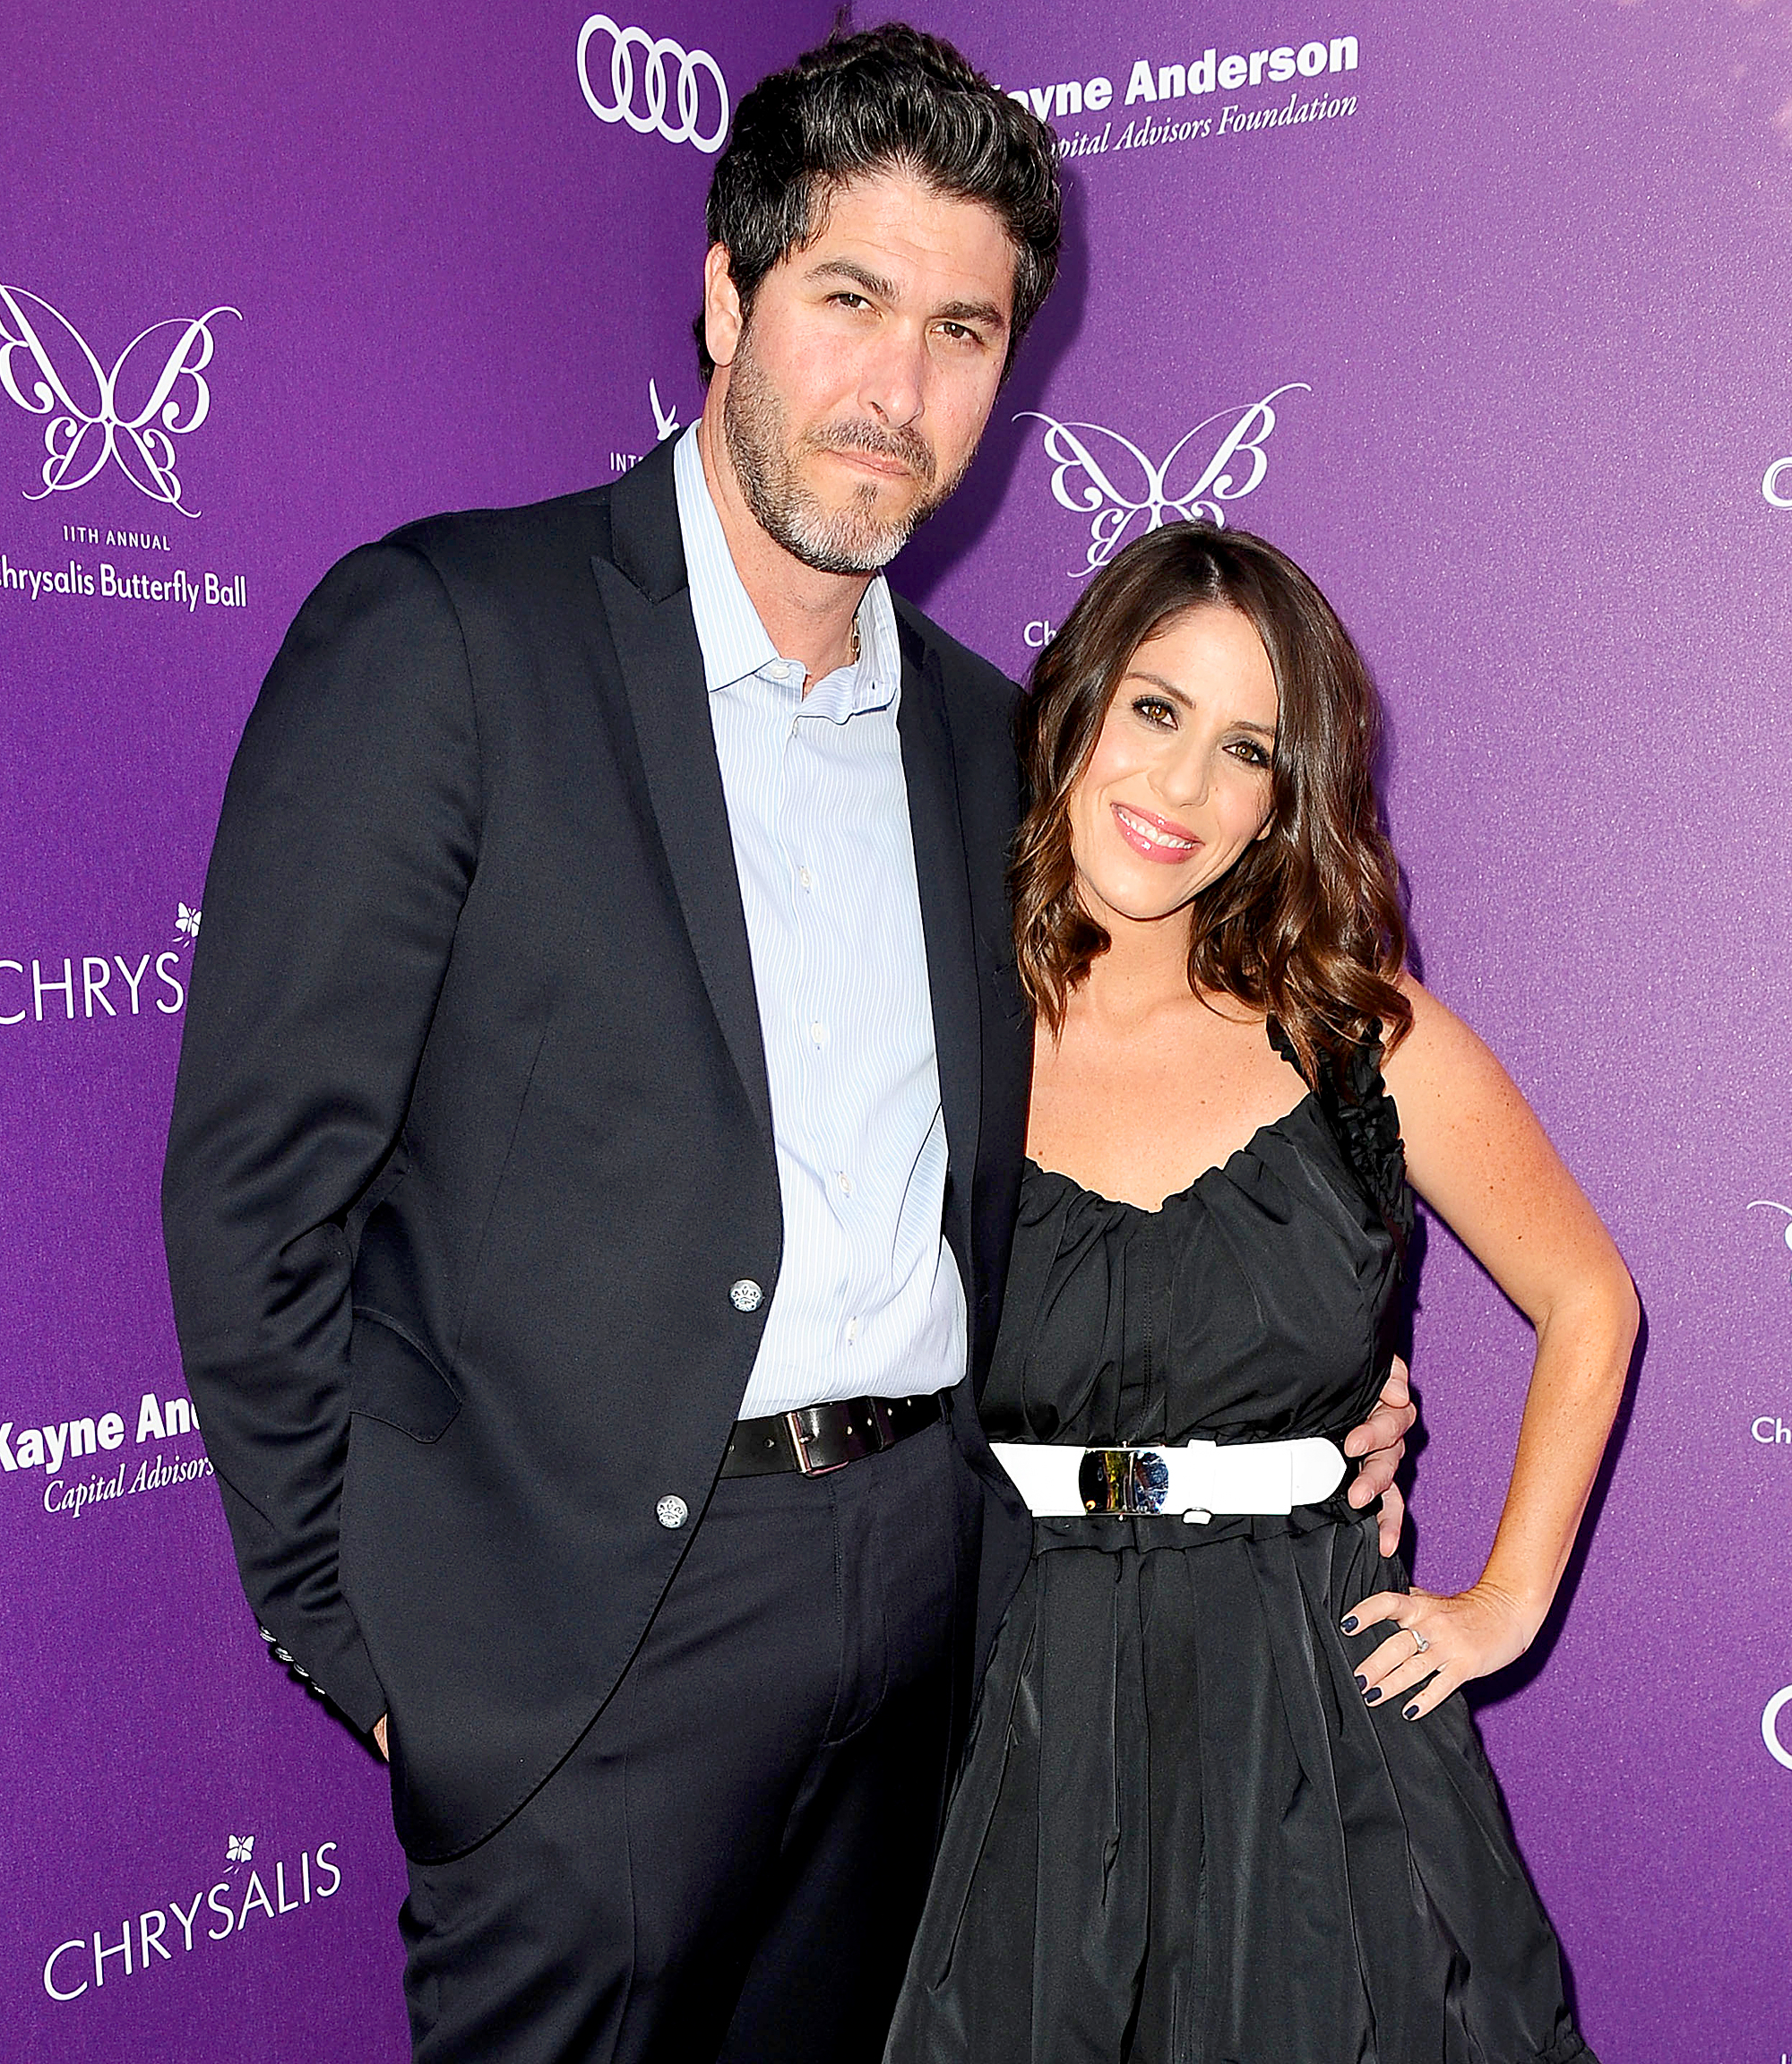 Soleil Moon Frye with her husband